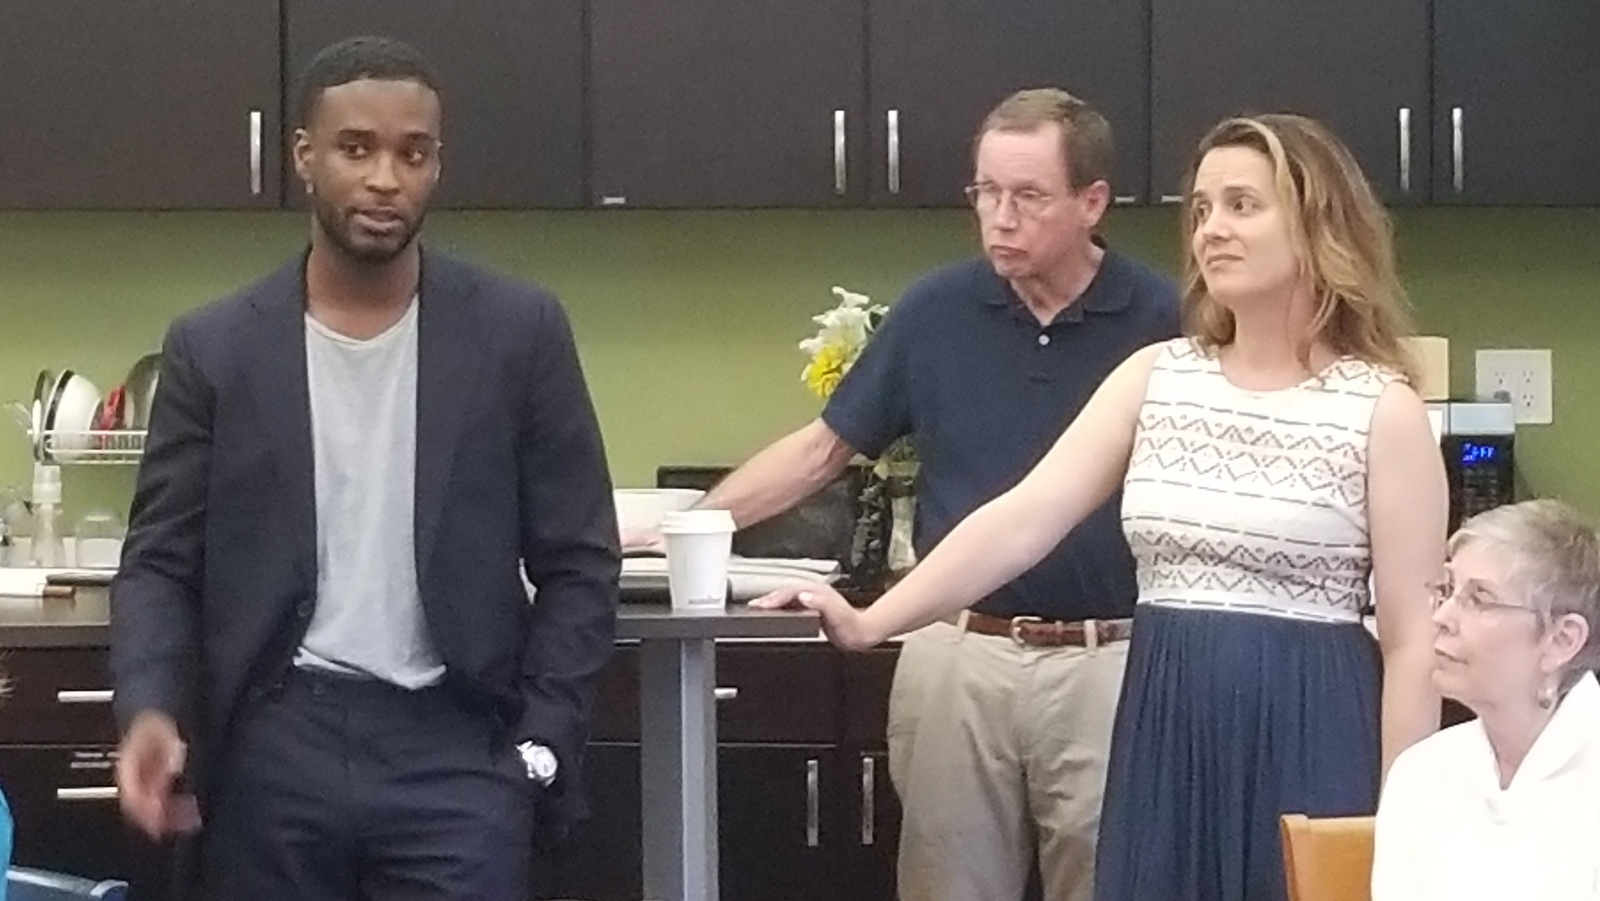 Developer Chris Mfume, consultant Al Barry and architect Pavlina Ilieva at a Woodberry Community Association meeting. (Ed Gunts.)